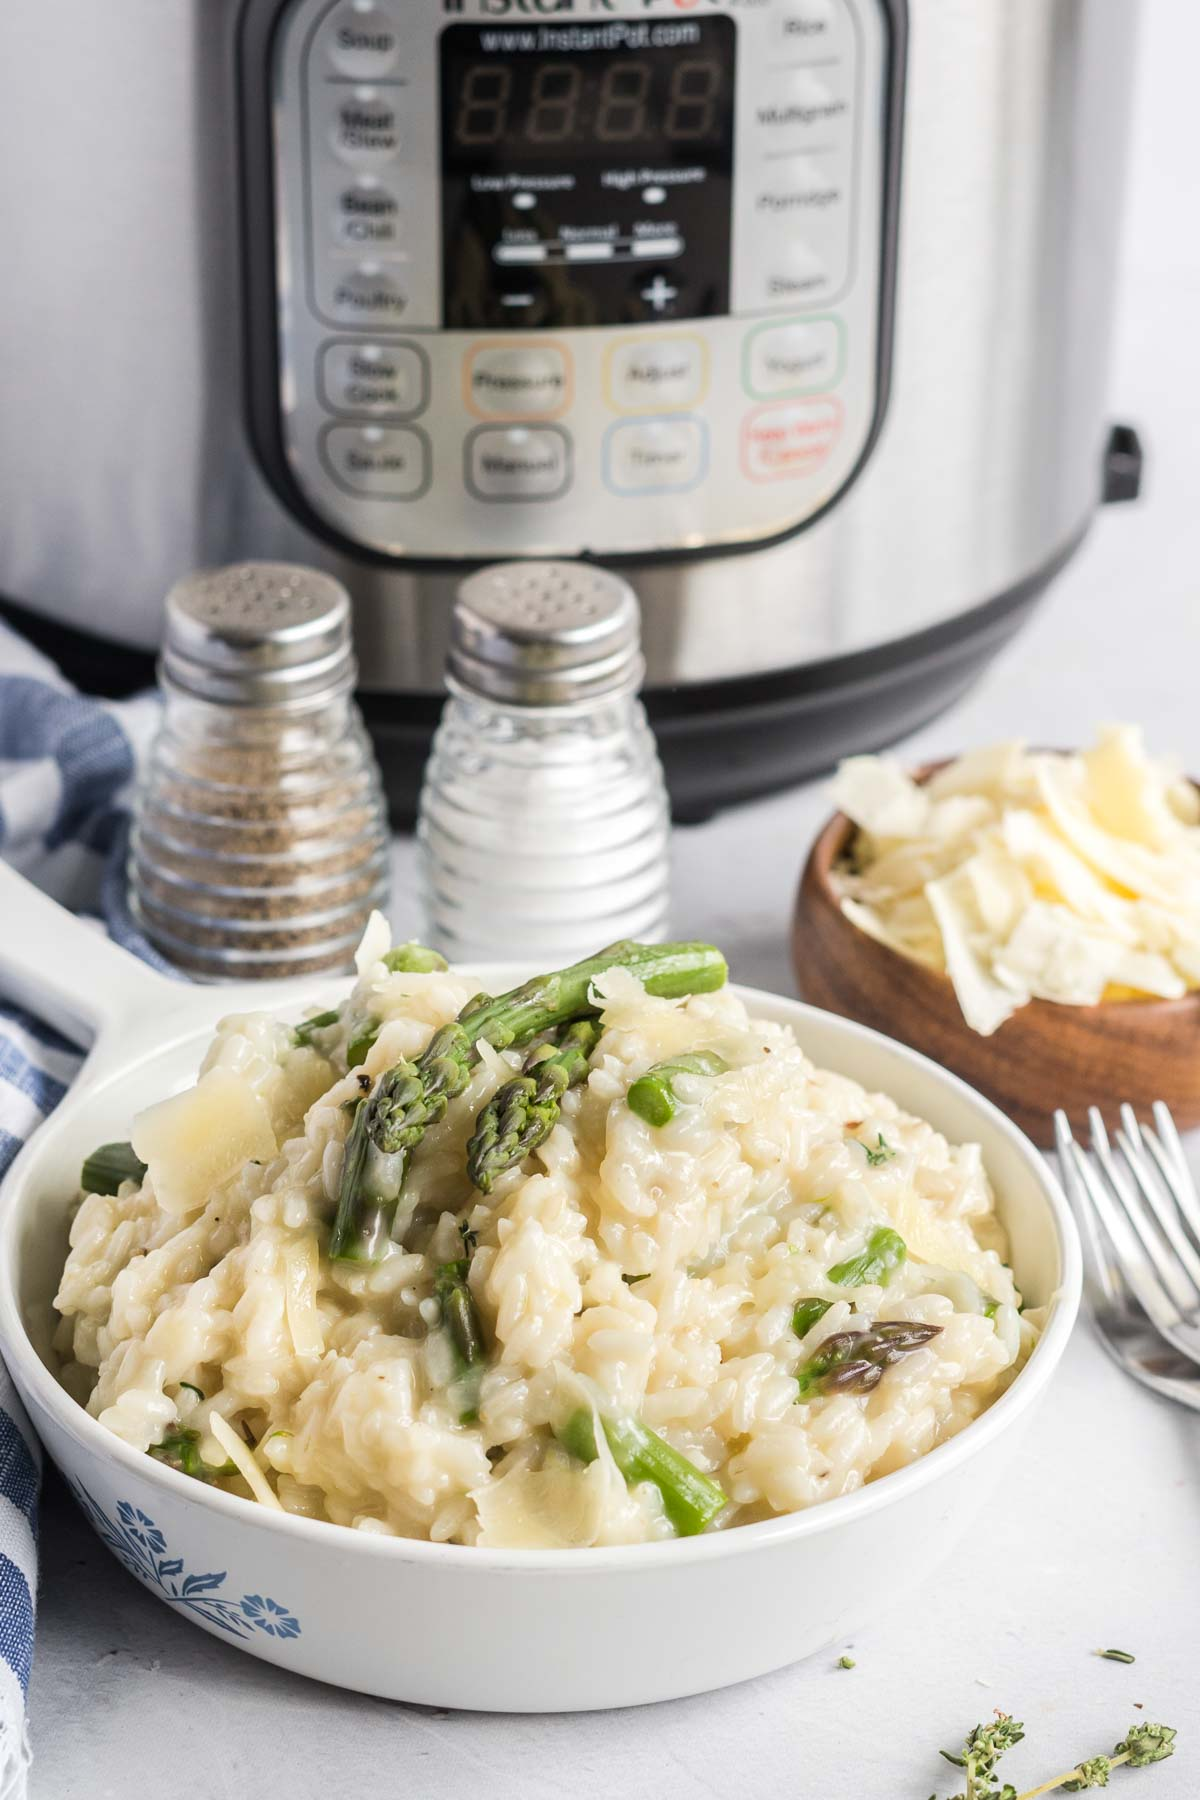 Risotto in a serving dish garnished with parmesan cheese.  Salt and pepper and a small bowl of parmesan on the side.